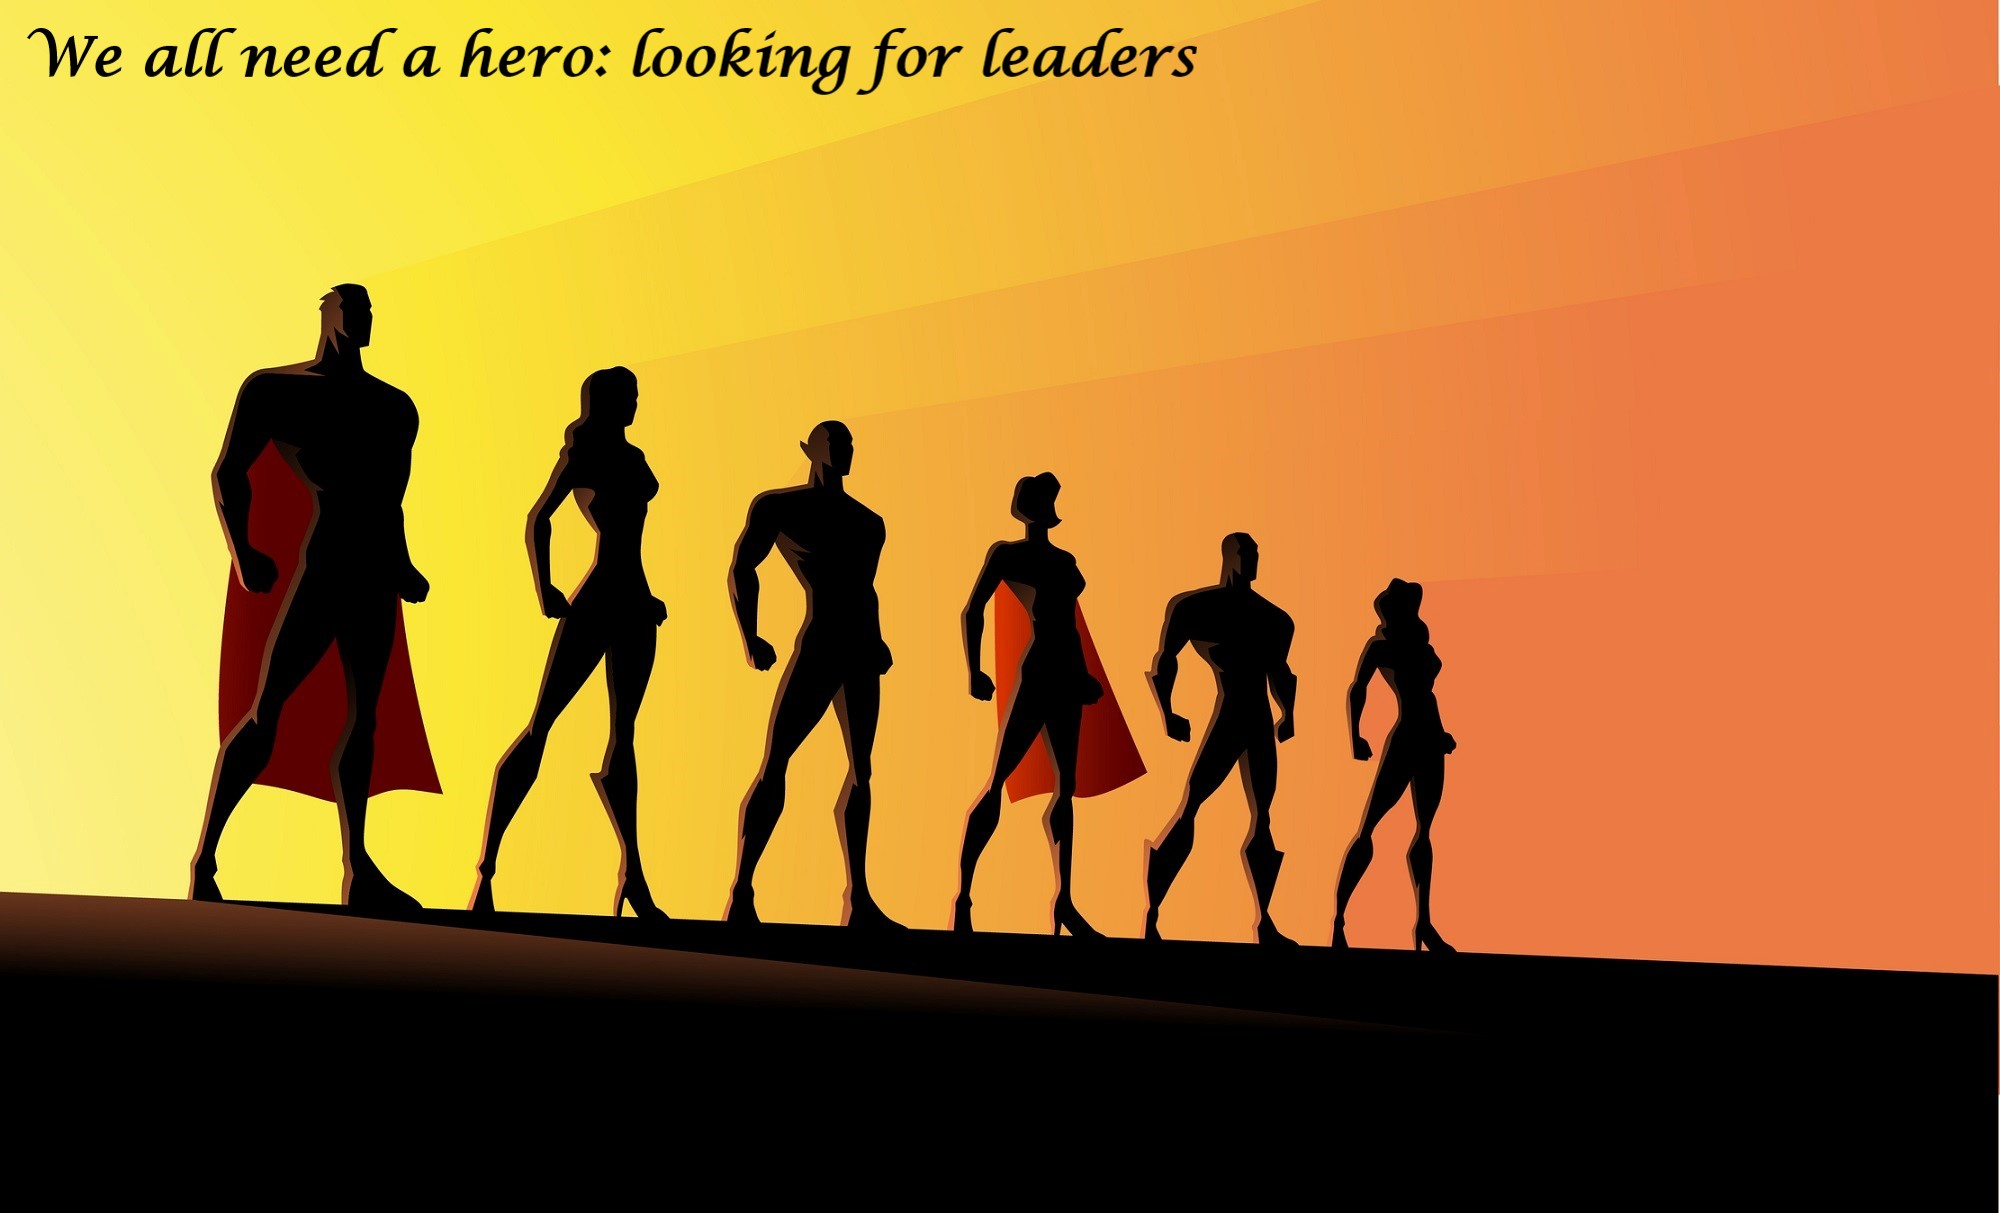 We all need a hero: Looking for leaders